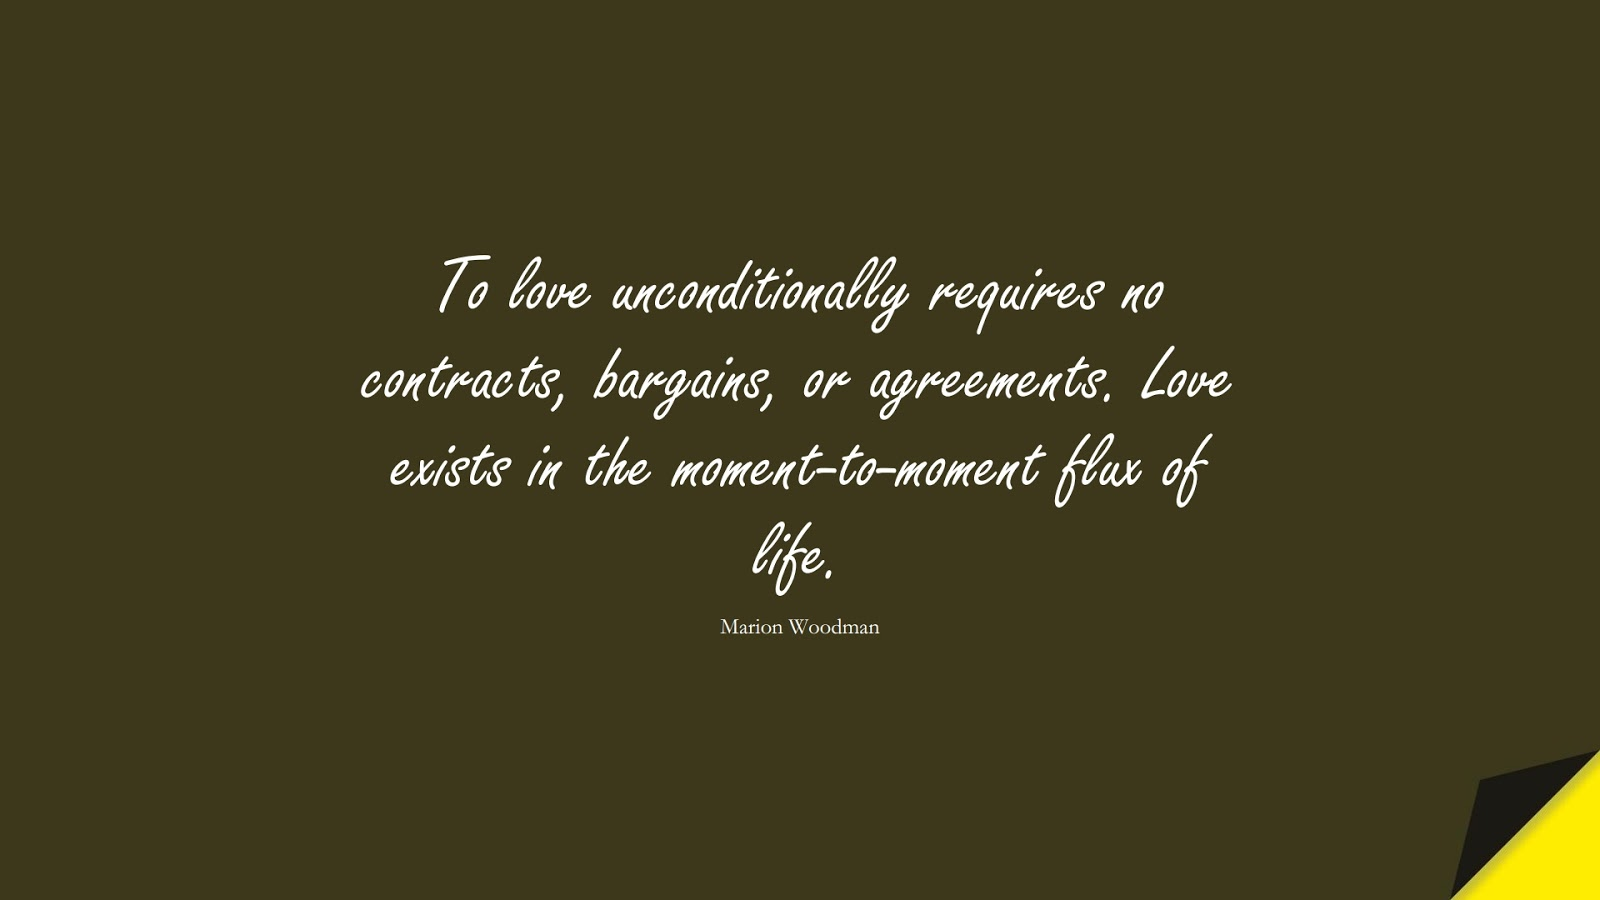 To love unconditionally requires no contracts, bargains, or agreements. Love exists in the moment-to-moment flux of life. (Marion Woodman);  #LoveQuotes